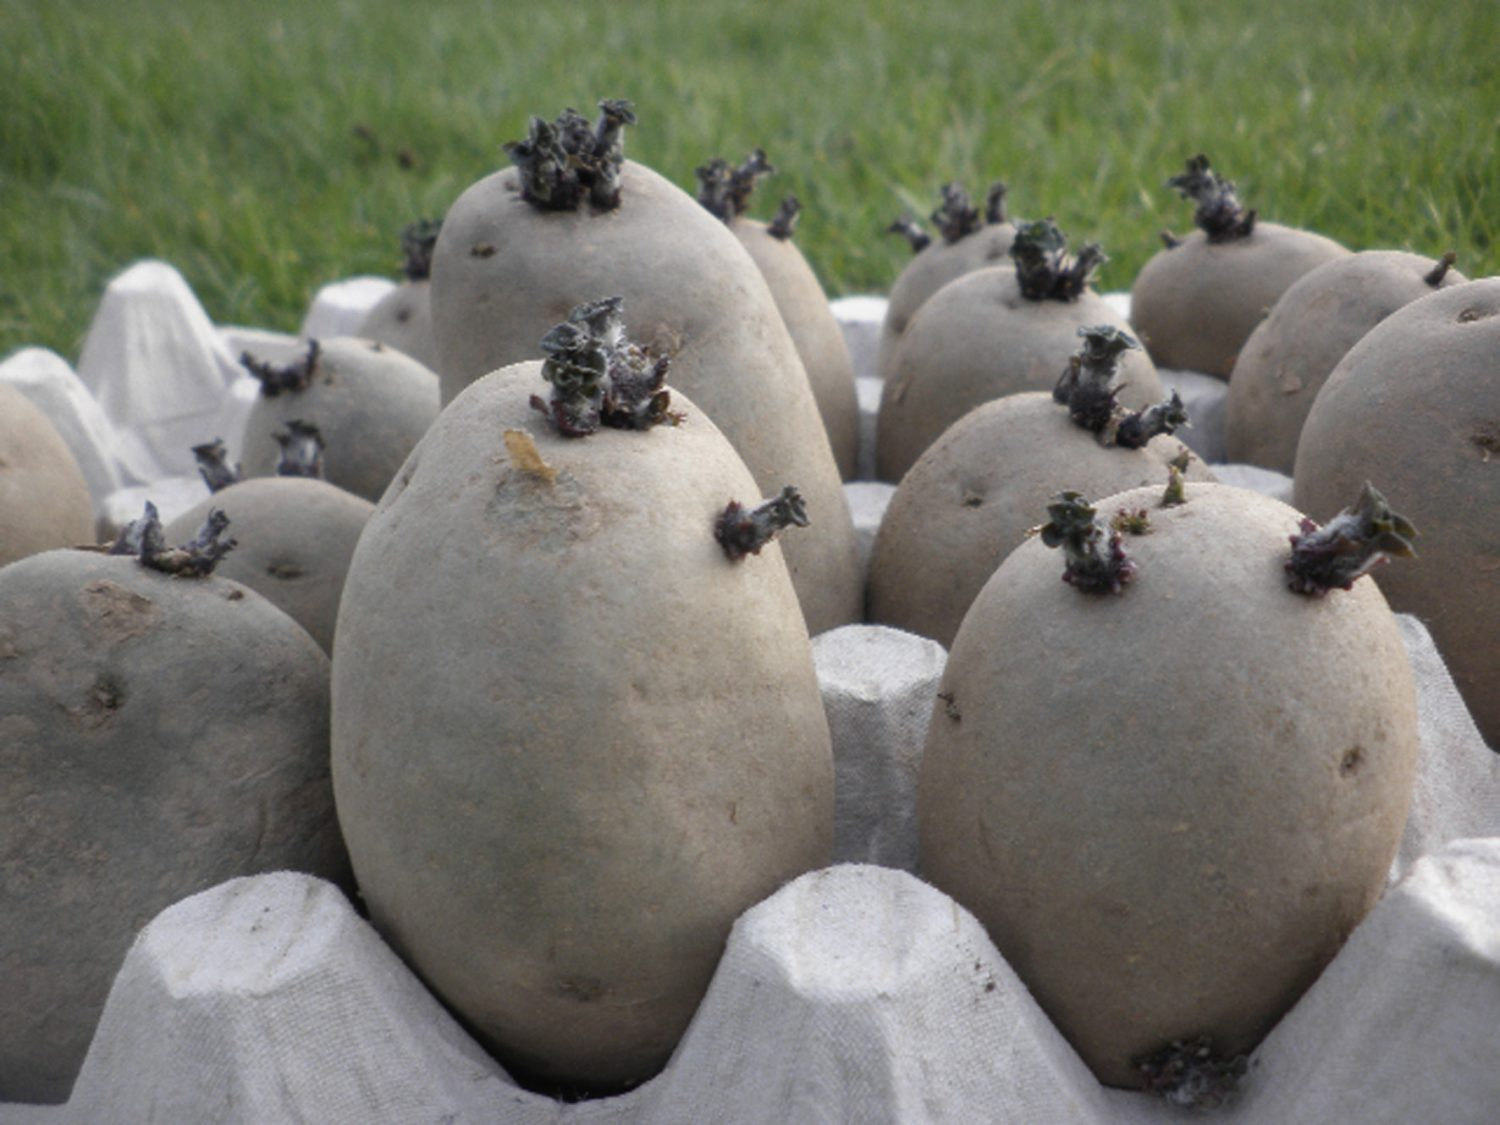 You've probably seen your eating potatoes occasionally start sprouting long straggly white shoots, but seed potatoes should be placed in a shallow tray or egg box and left to sprout